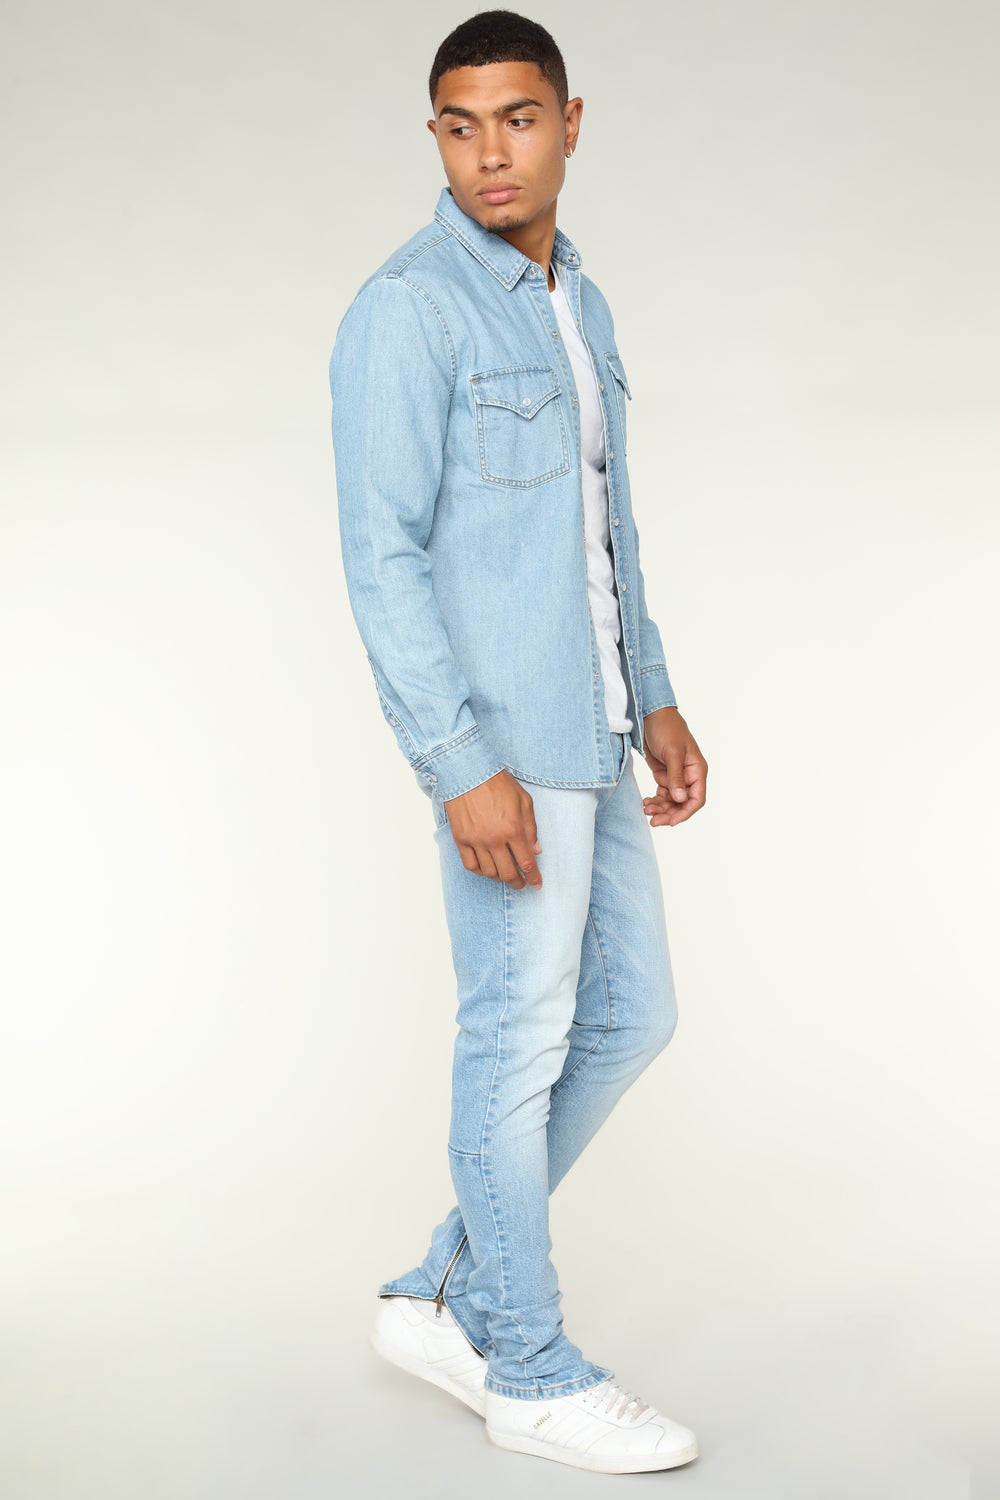 Arche Skinny Jeans - Light Blue Wash